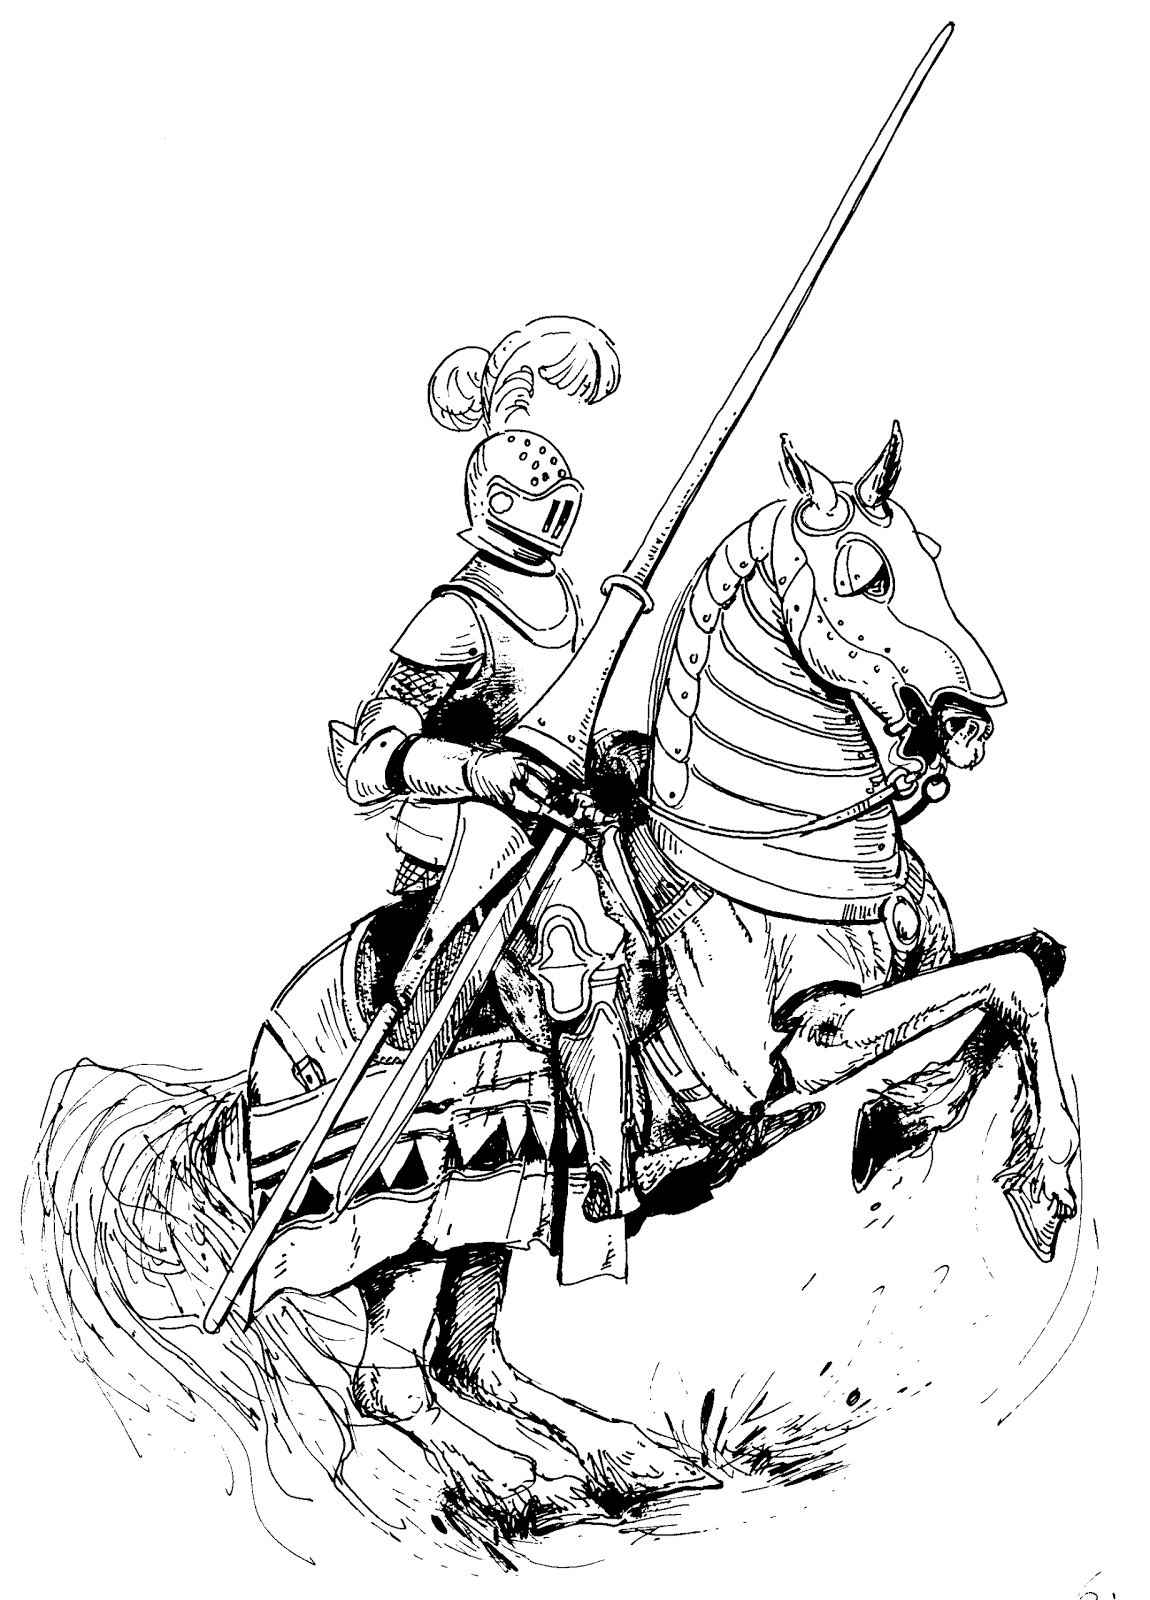 fiver knights coloring pages | All the Funny Ones ! : Funny King Arthur Story